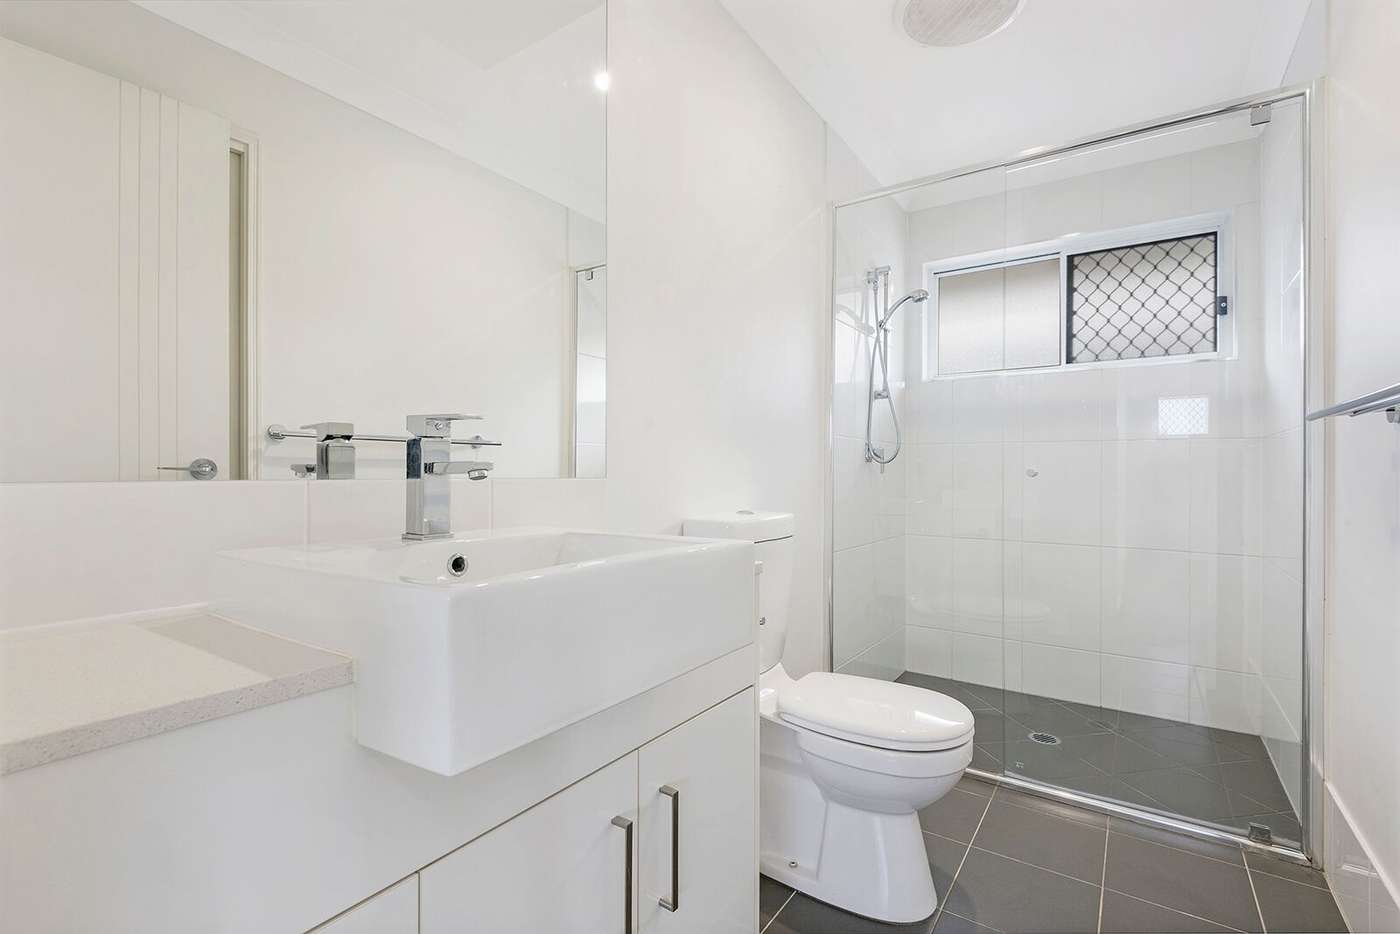 Sixth view of Homely house listing, 41 Lilley Street, Hendra QLD 4011